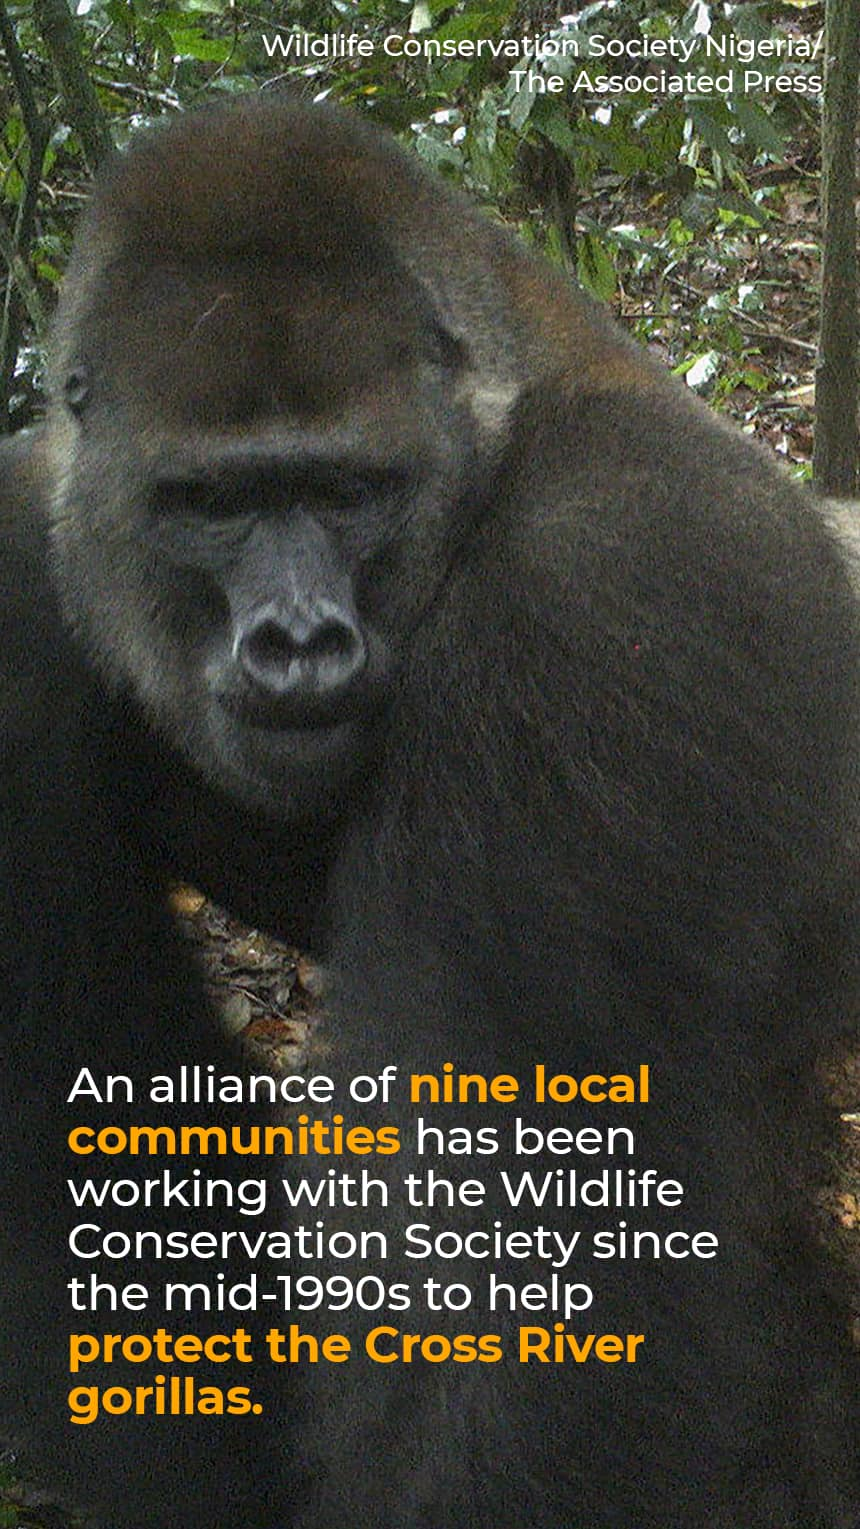 TEXT:  An alliance of nine local communities has been working with the Wildlife Conservation Society since the mid-1990s to help protect the Cross River gorillas.  IMAGE: Gorilla